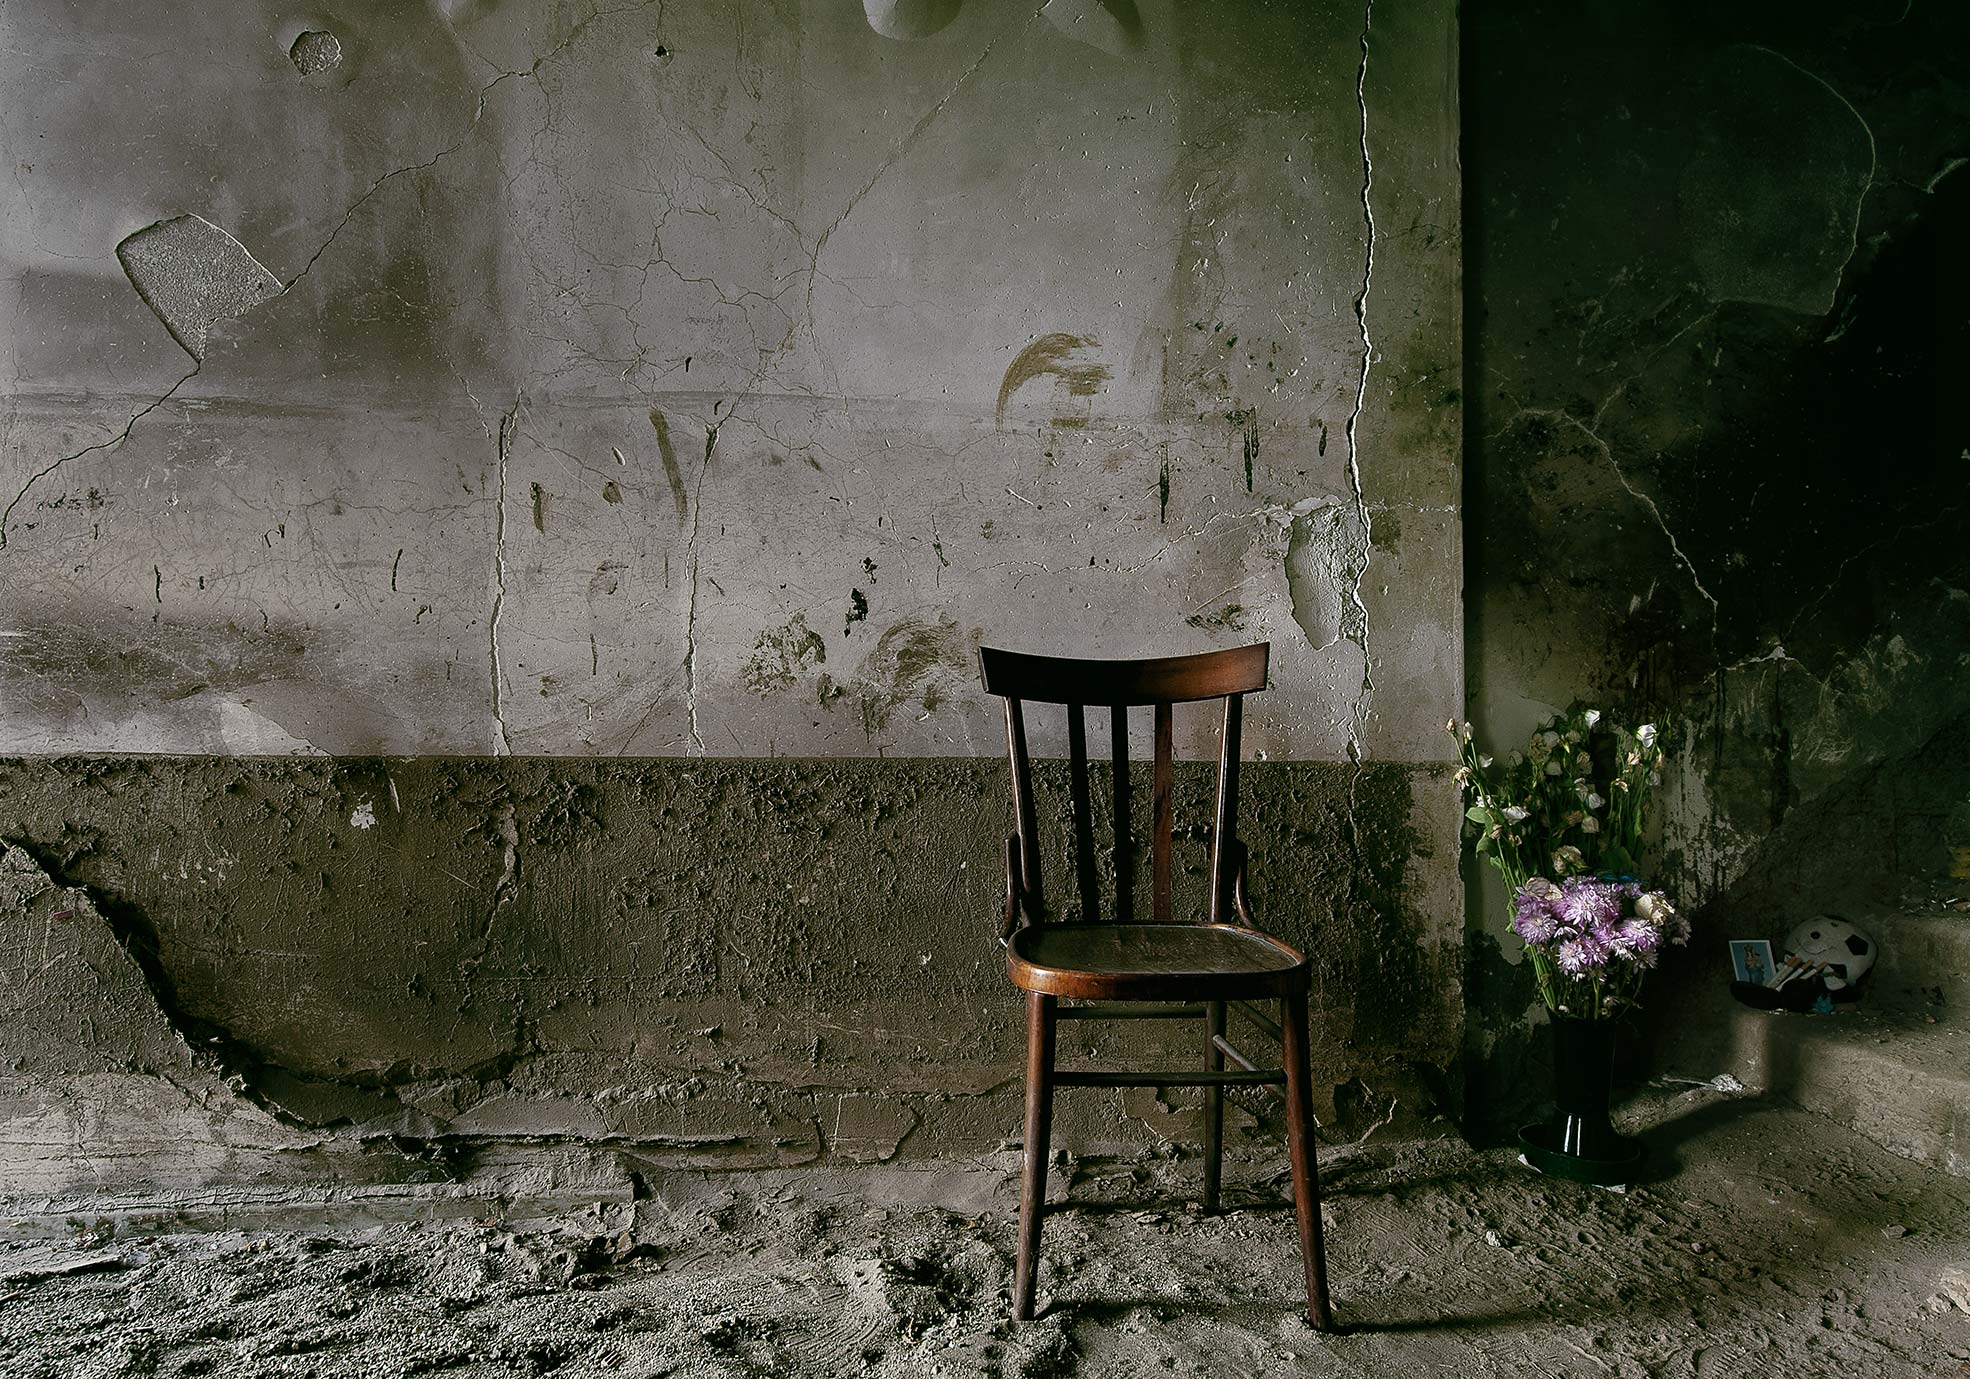 A chair without a leg and some flowers one of the trail of Giampilieri after the flood Photographer Maria Teresa Furnari